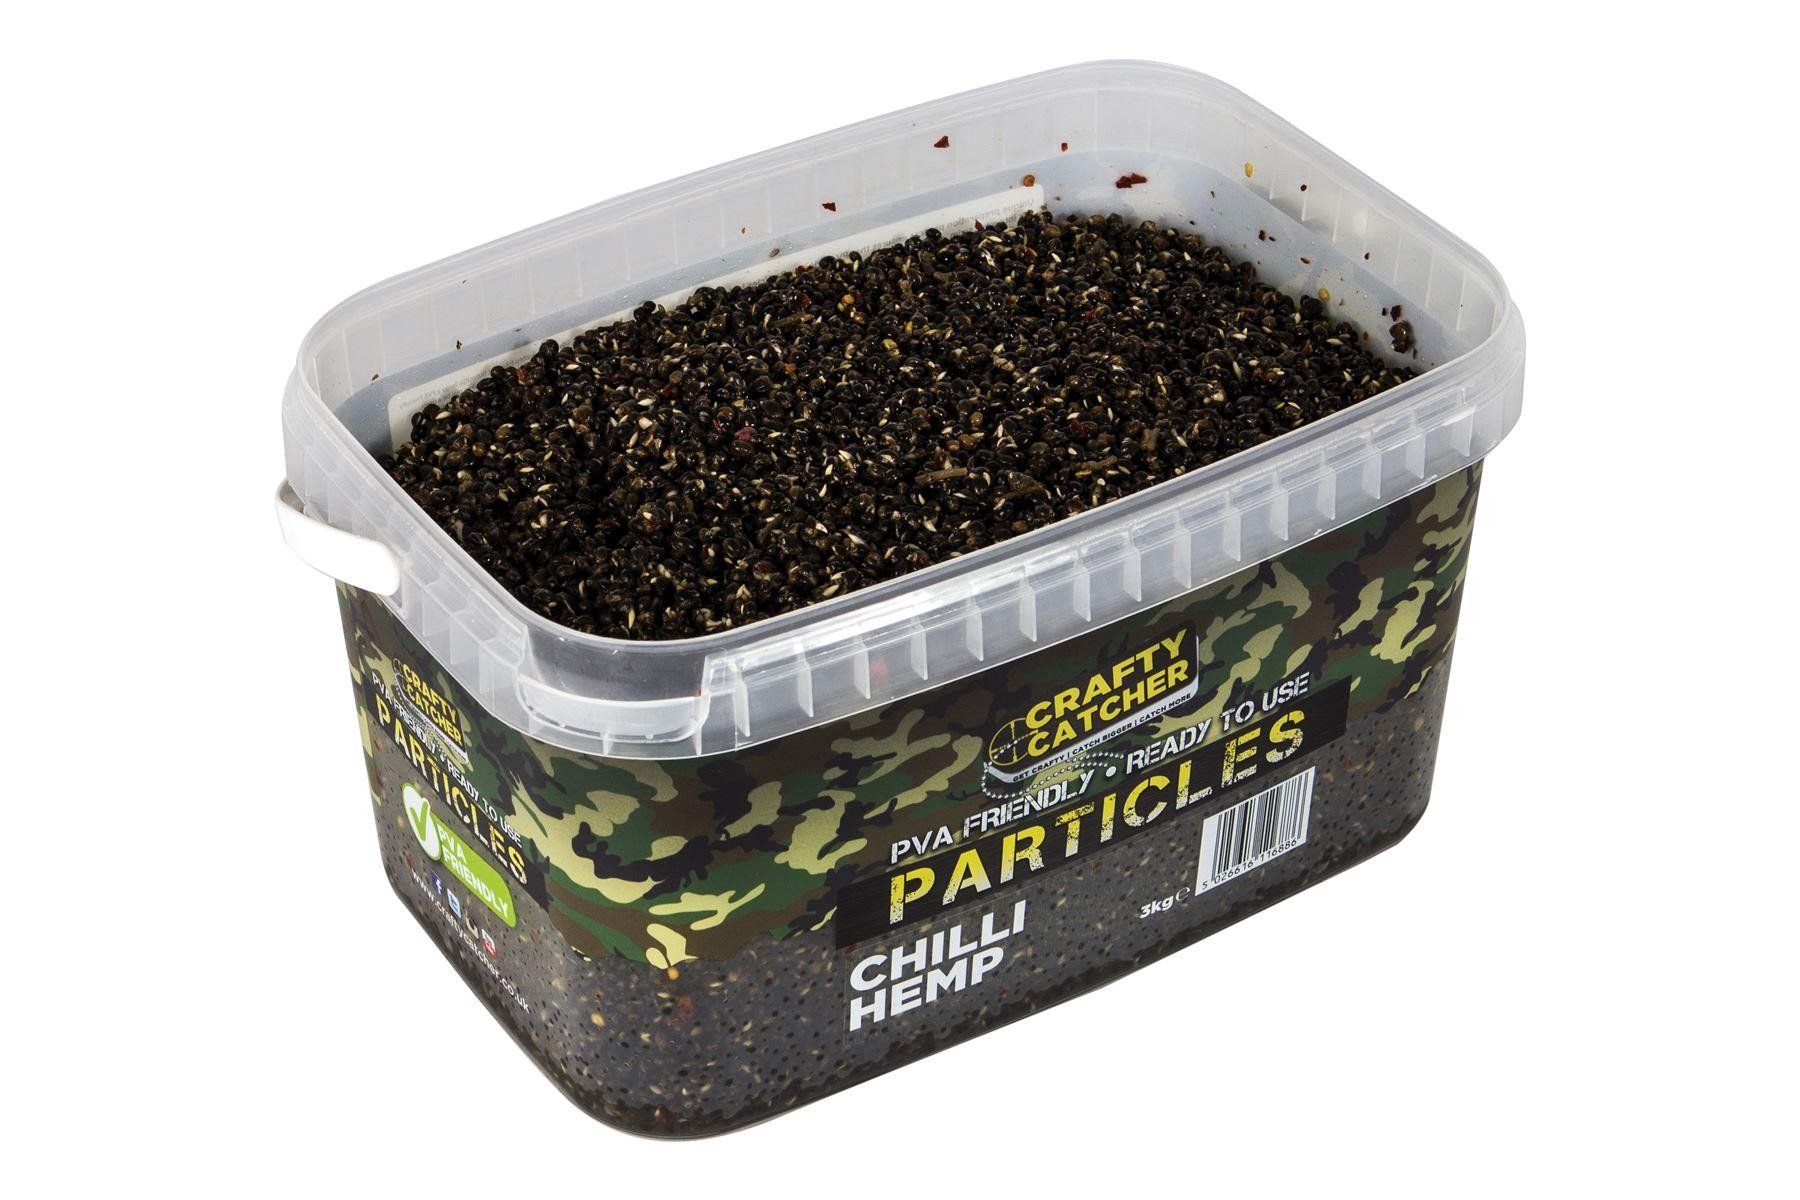 Crafty Catcher Chilli Hemp Prepared Particles 3Kg  Ready To Use